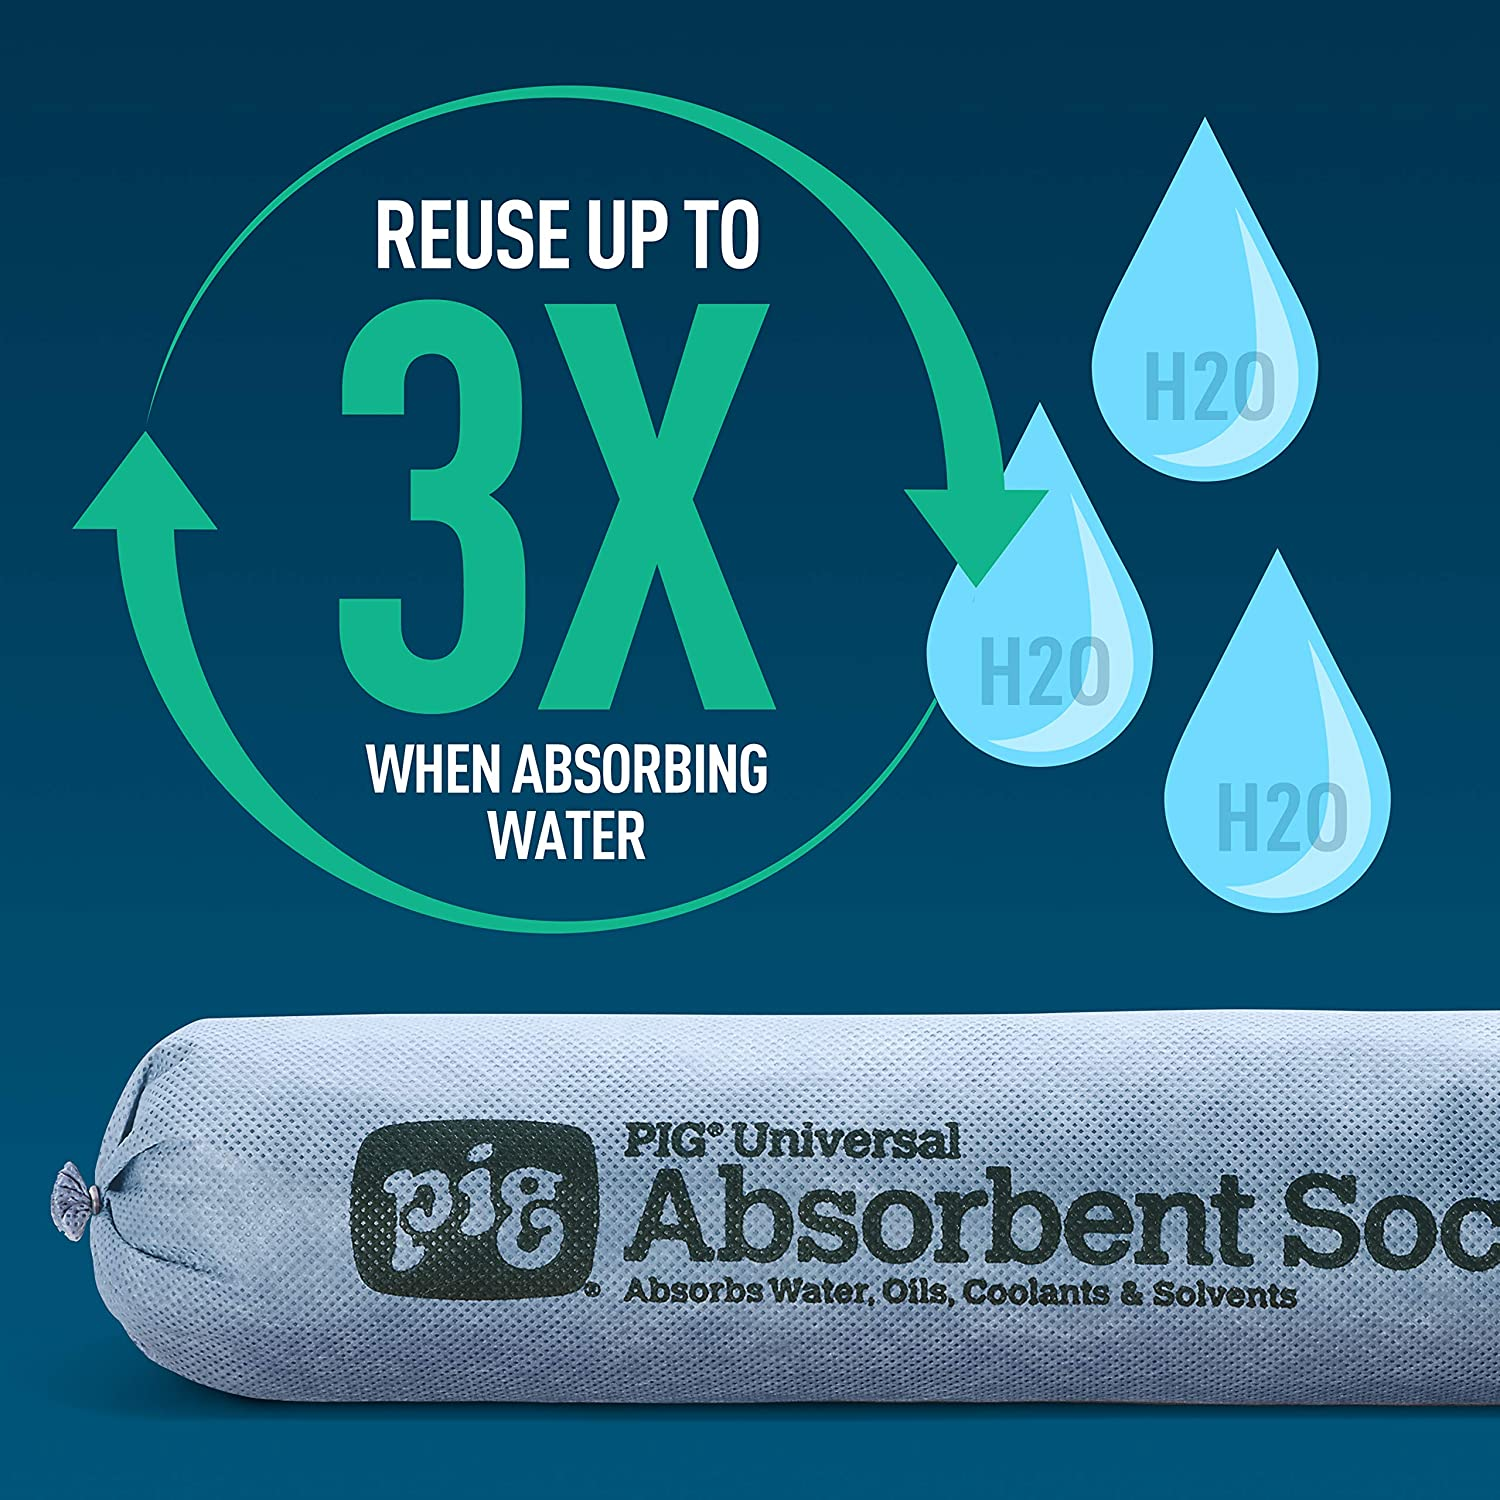 New Pig Absorbent Sock Absorbs 95 Ounces PIG238 New Pig Corporation 3 x 48 Box of 12